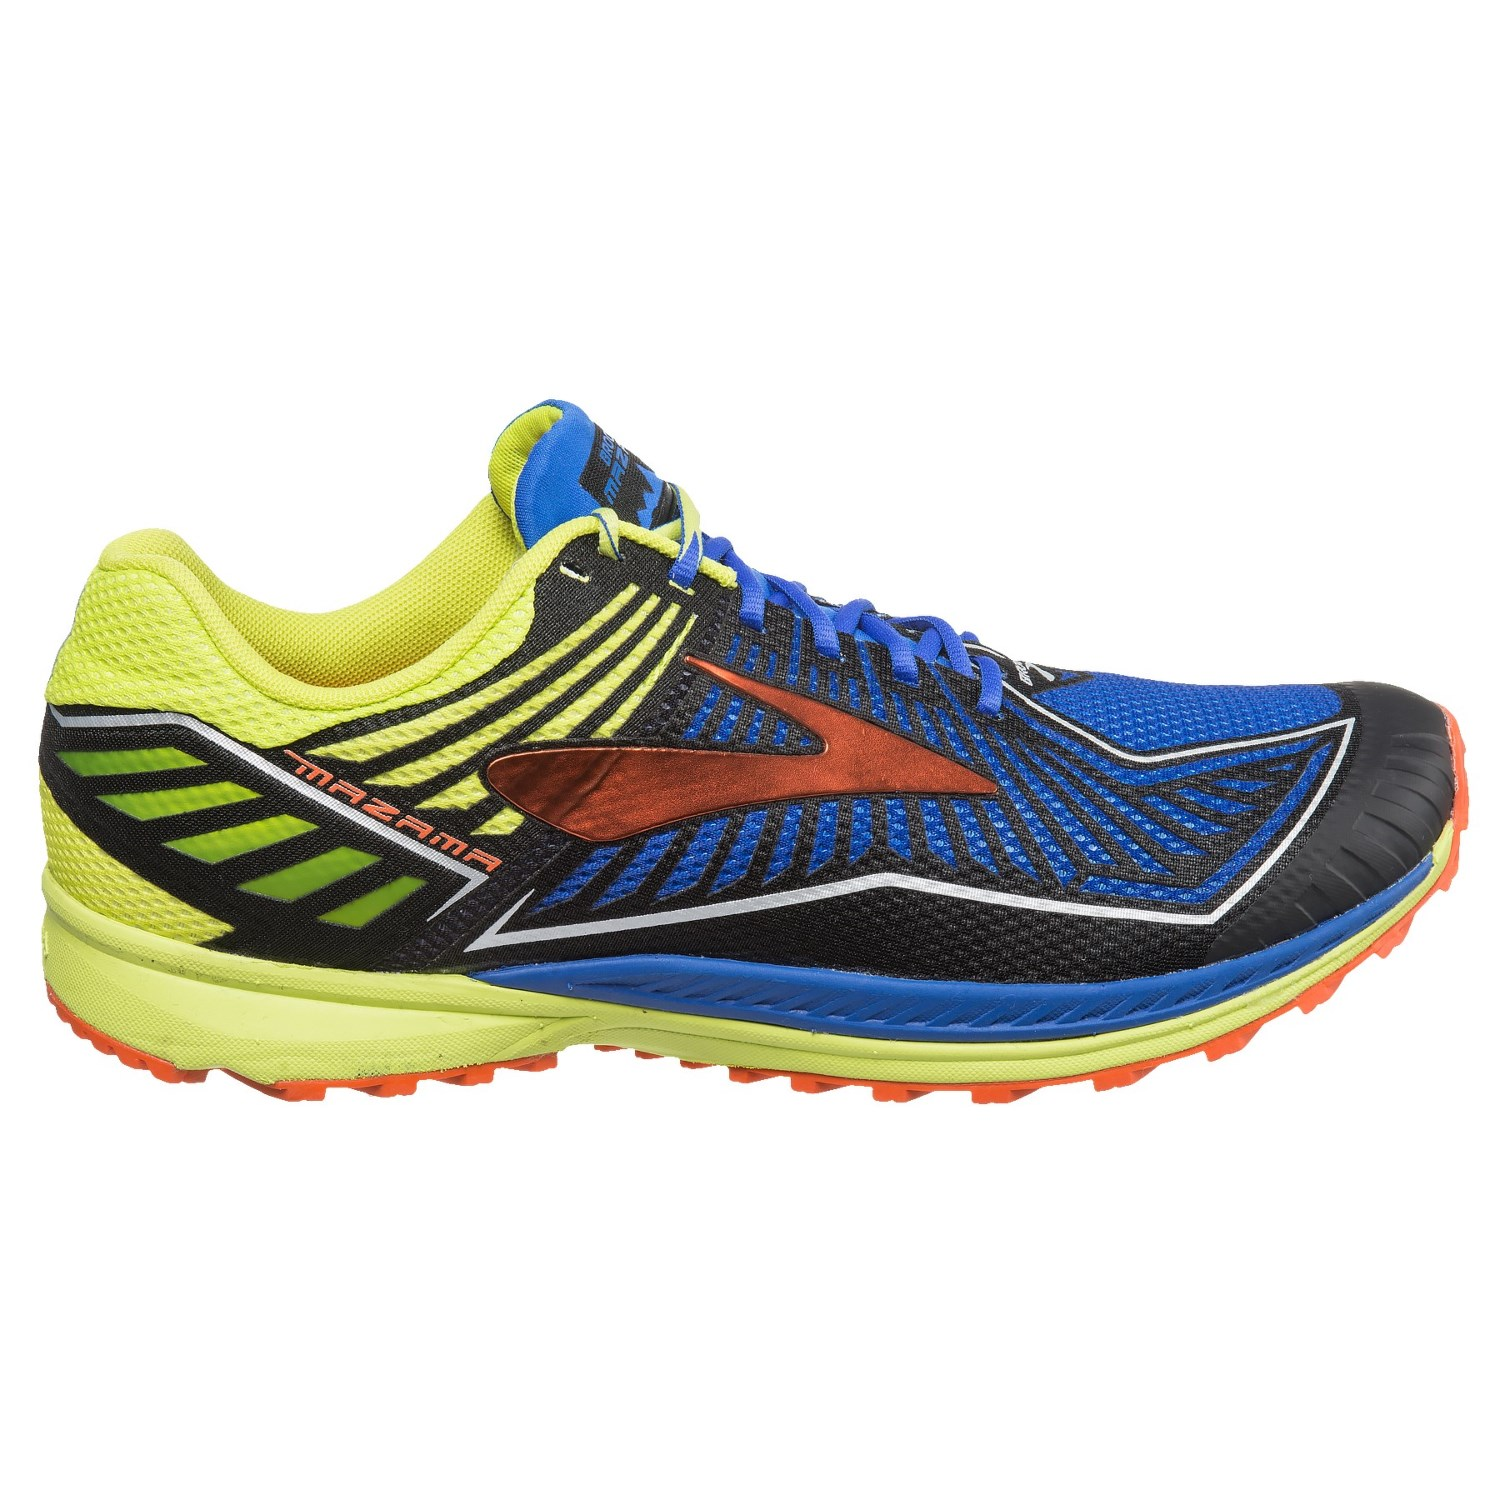 Trail Men Brooks Mazama Shoesfor Running 7IgbvYf6y